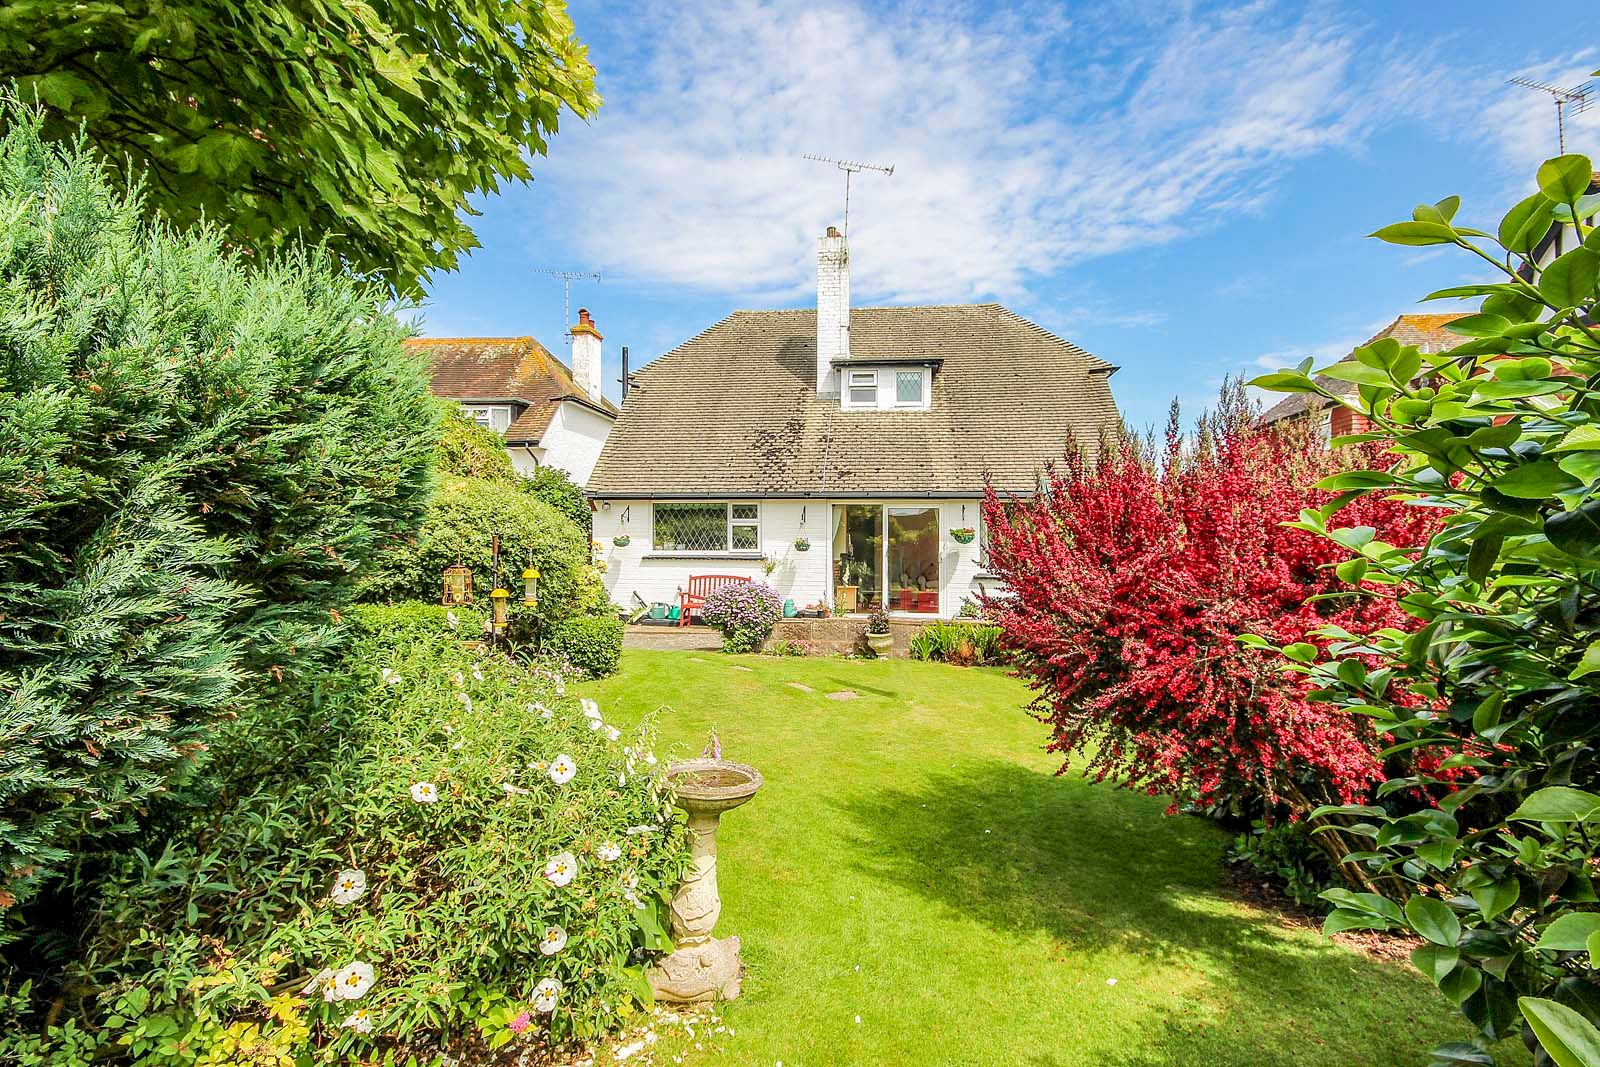 3 bed House for sale in Rustington - Rear shot (Property Image 0)